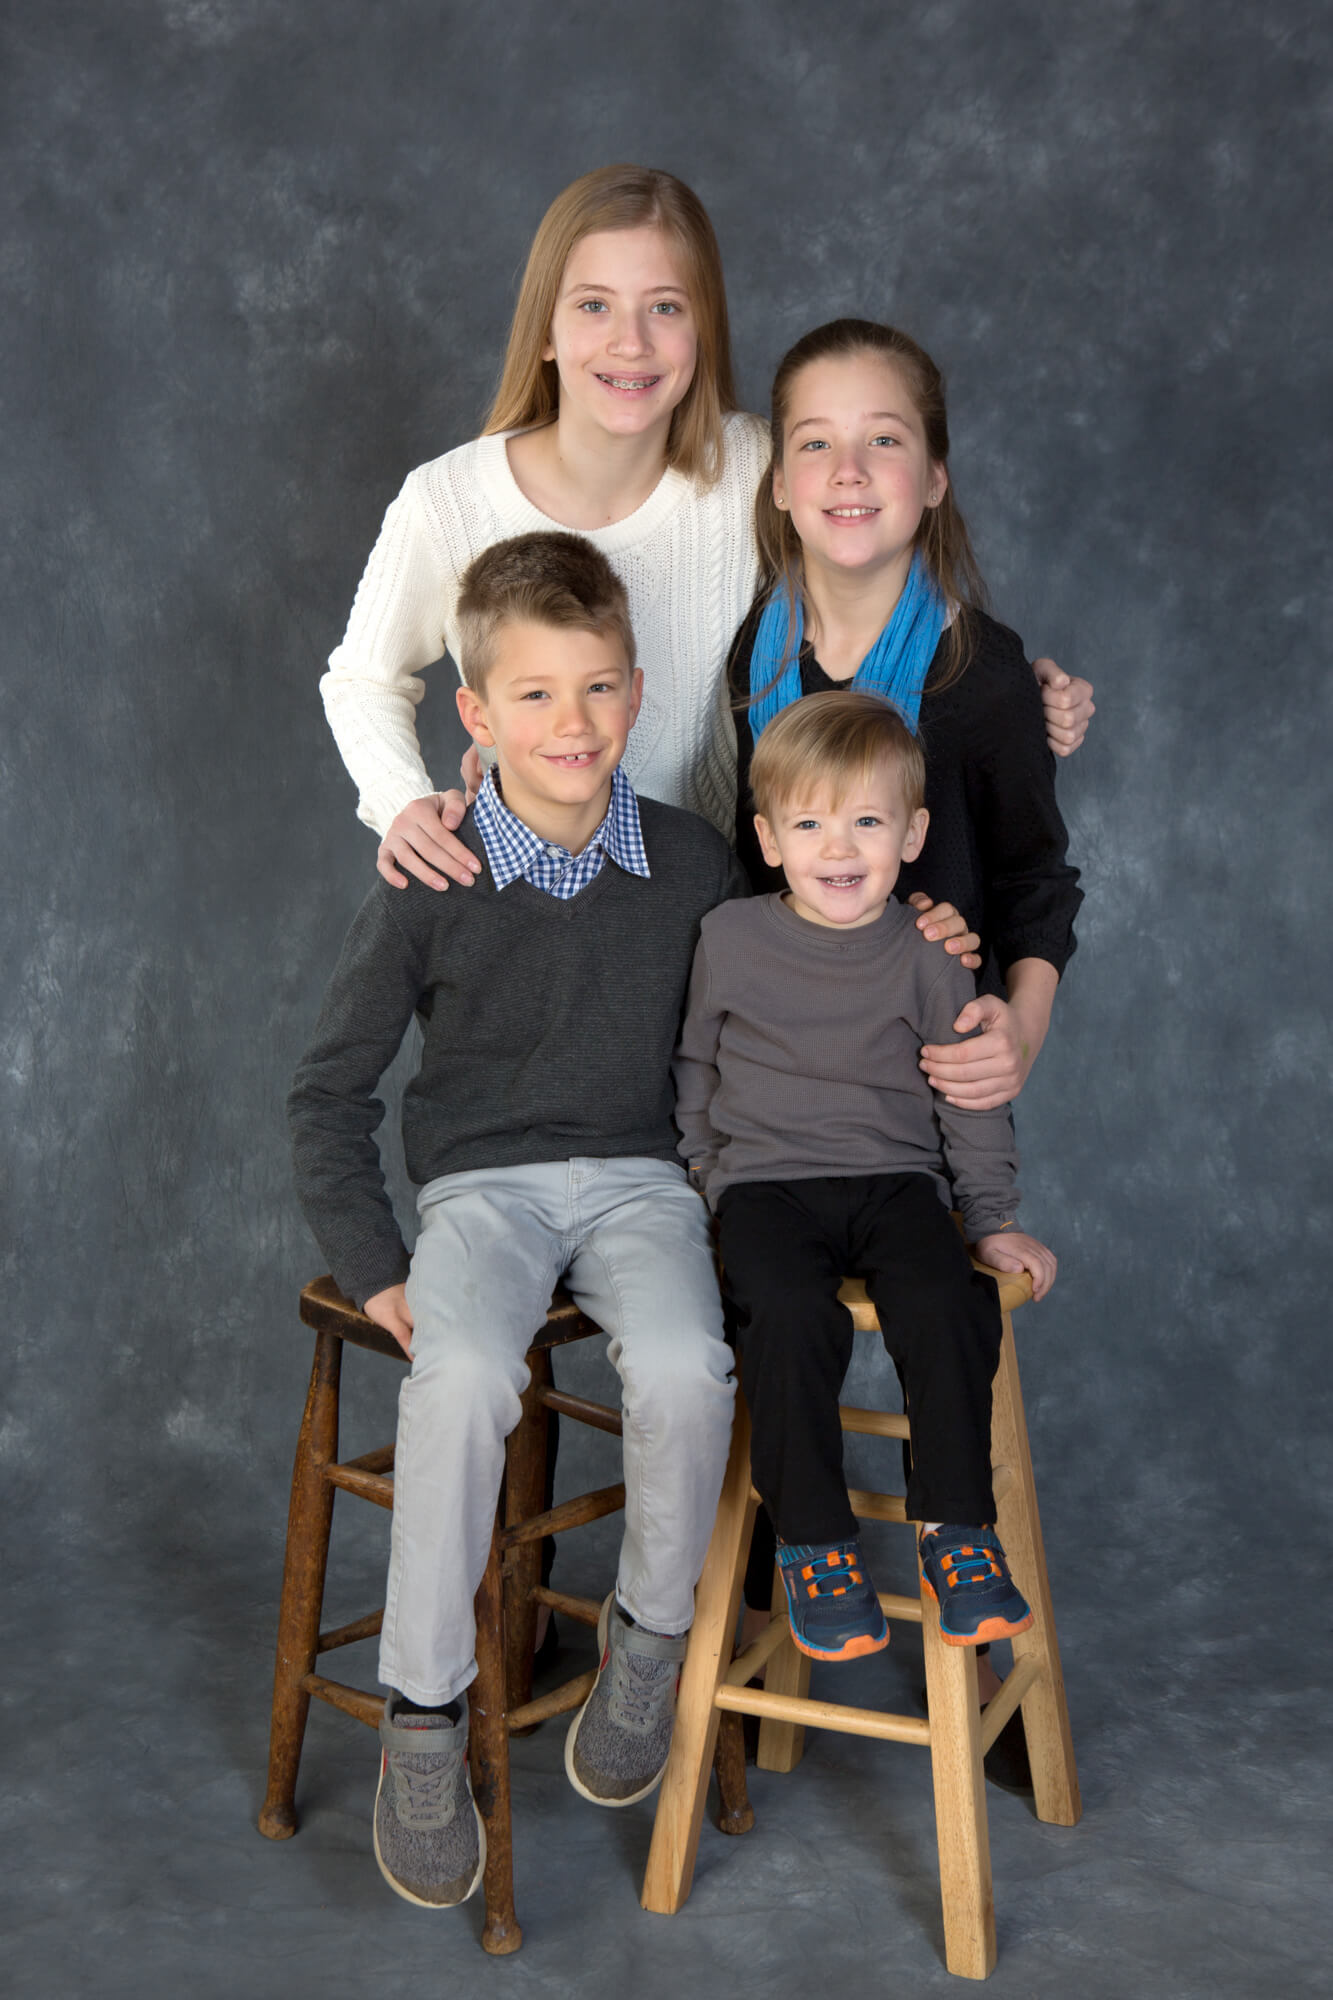 In Studio Portrait session with Siblings